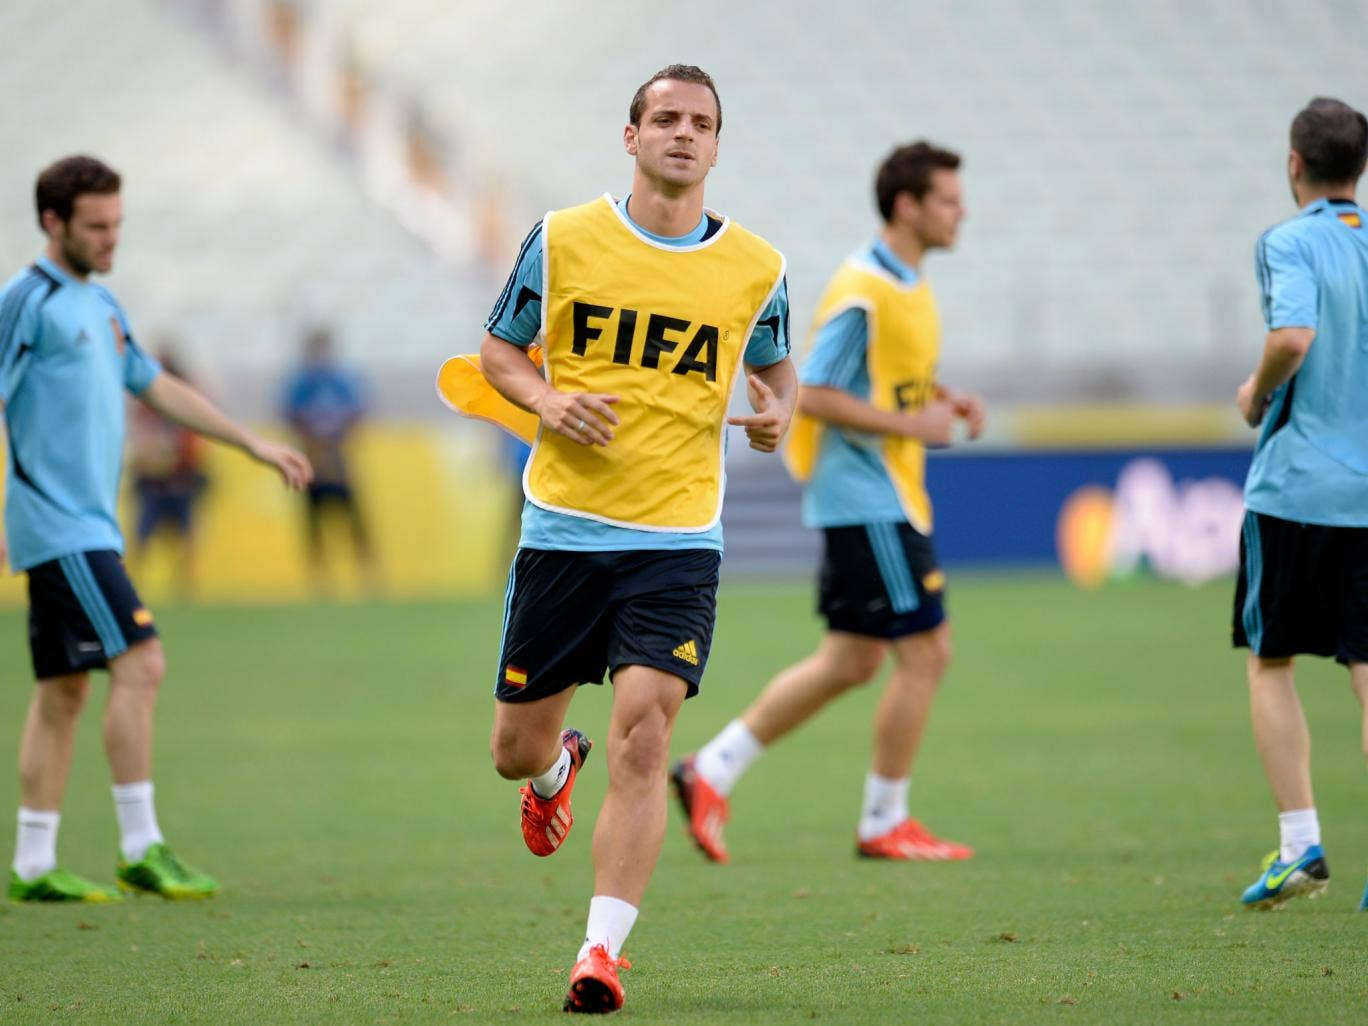 Roberto Soldado looks set to join Spurs after a deal was agreed with his current club Valencia